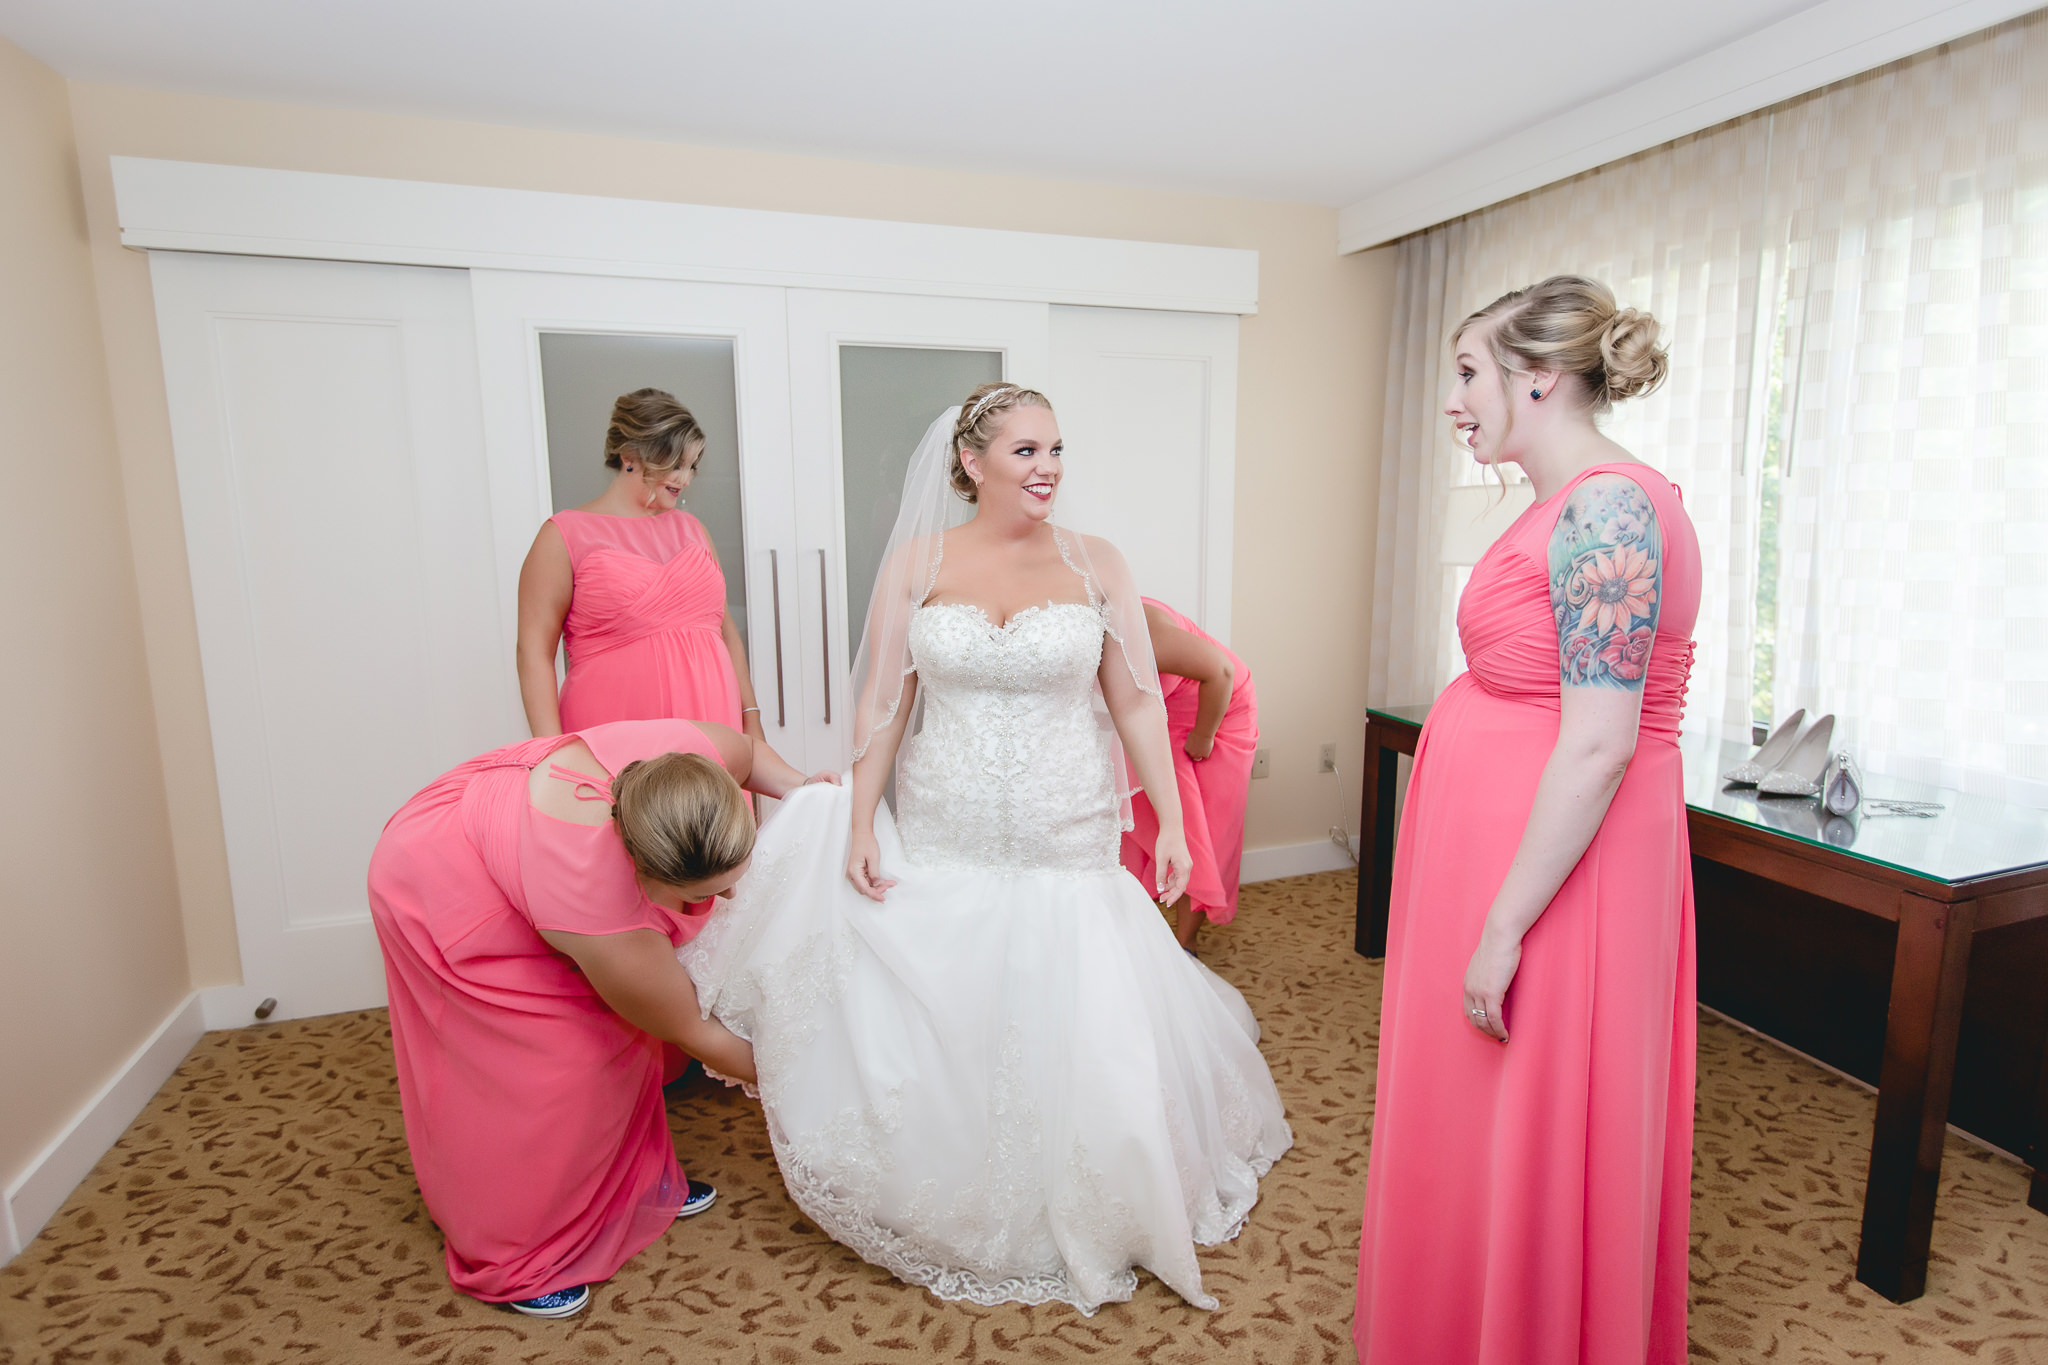 Bride smiles as her bridesmaids help her get dressed for her wedding